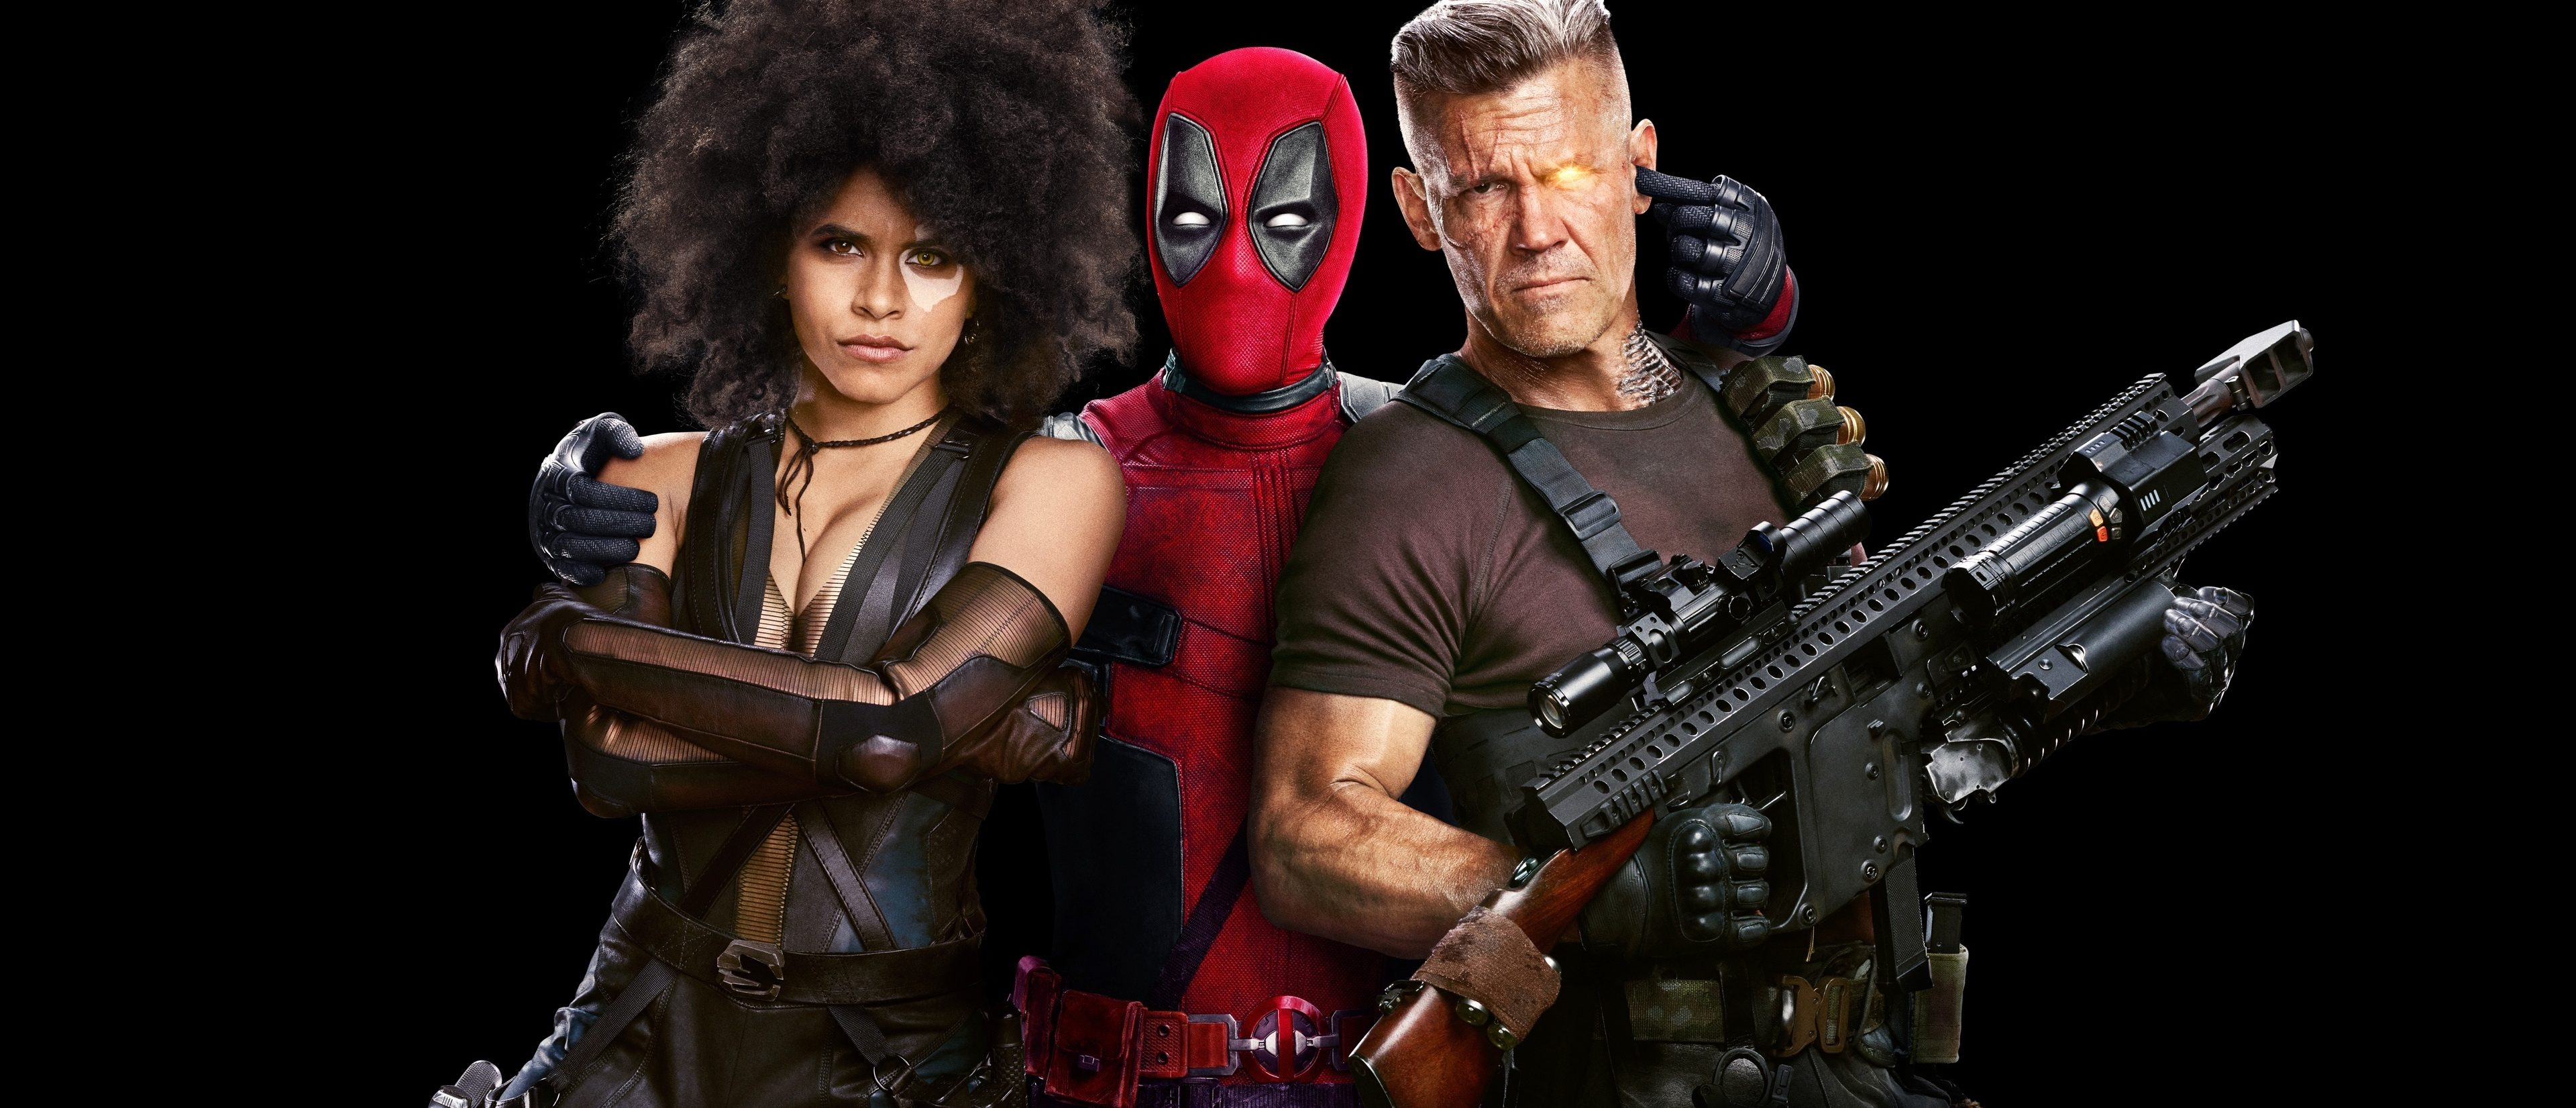 deadpool-2-photos-and-wallpapers-posters-stills-etc-3